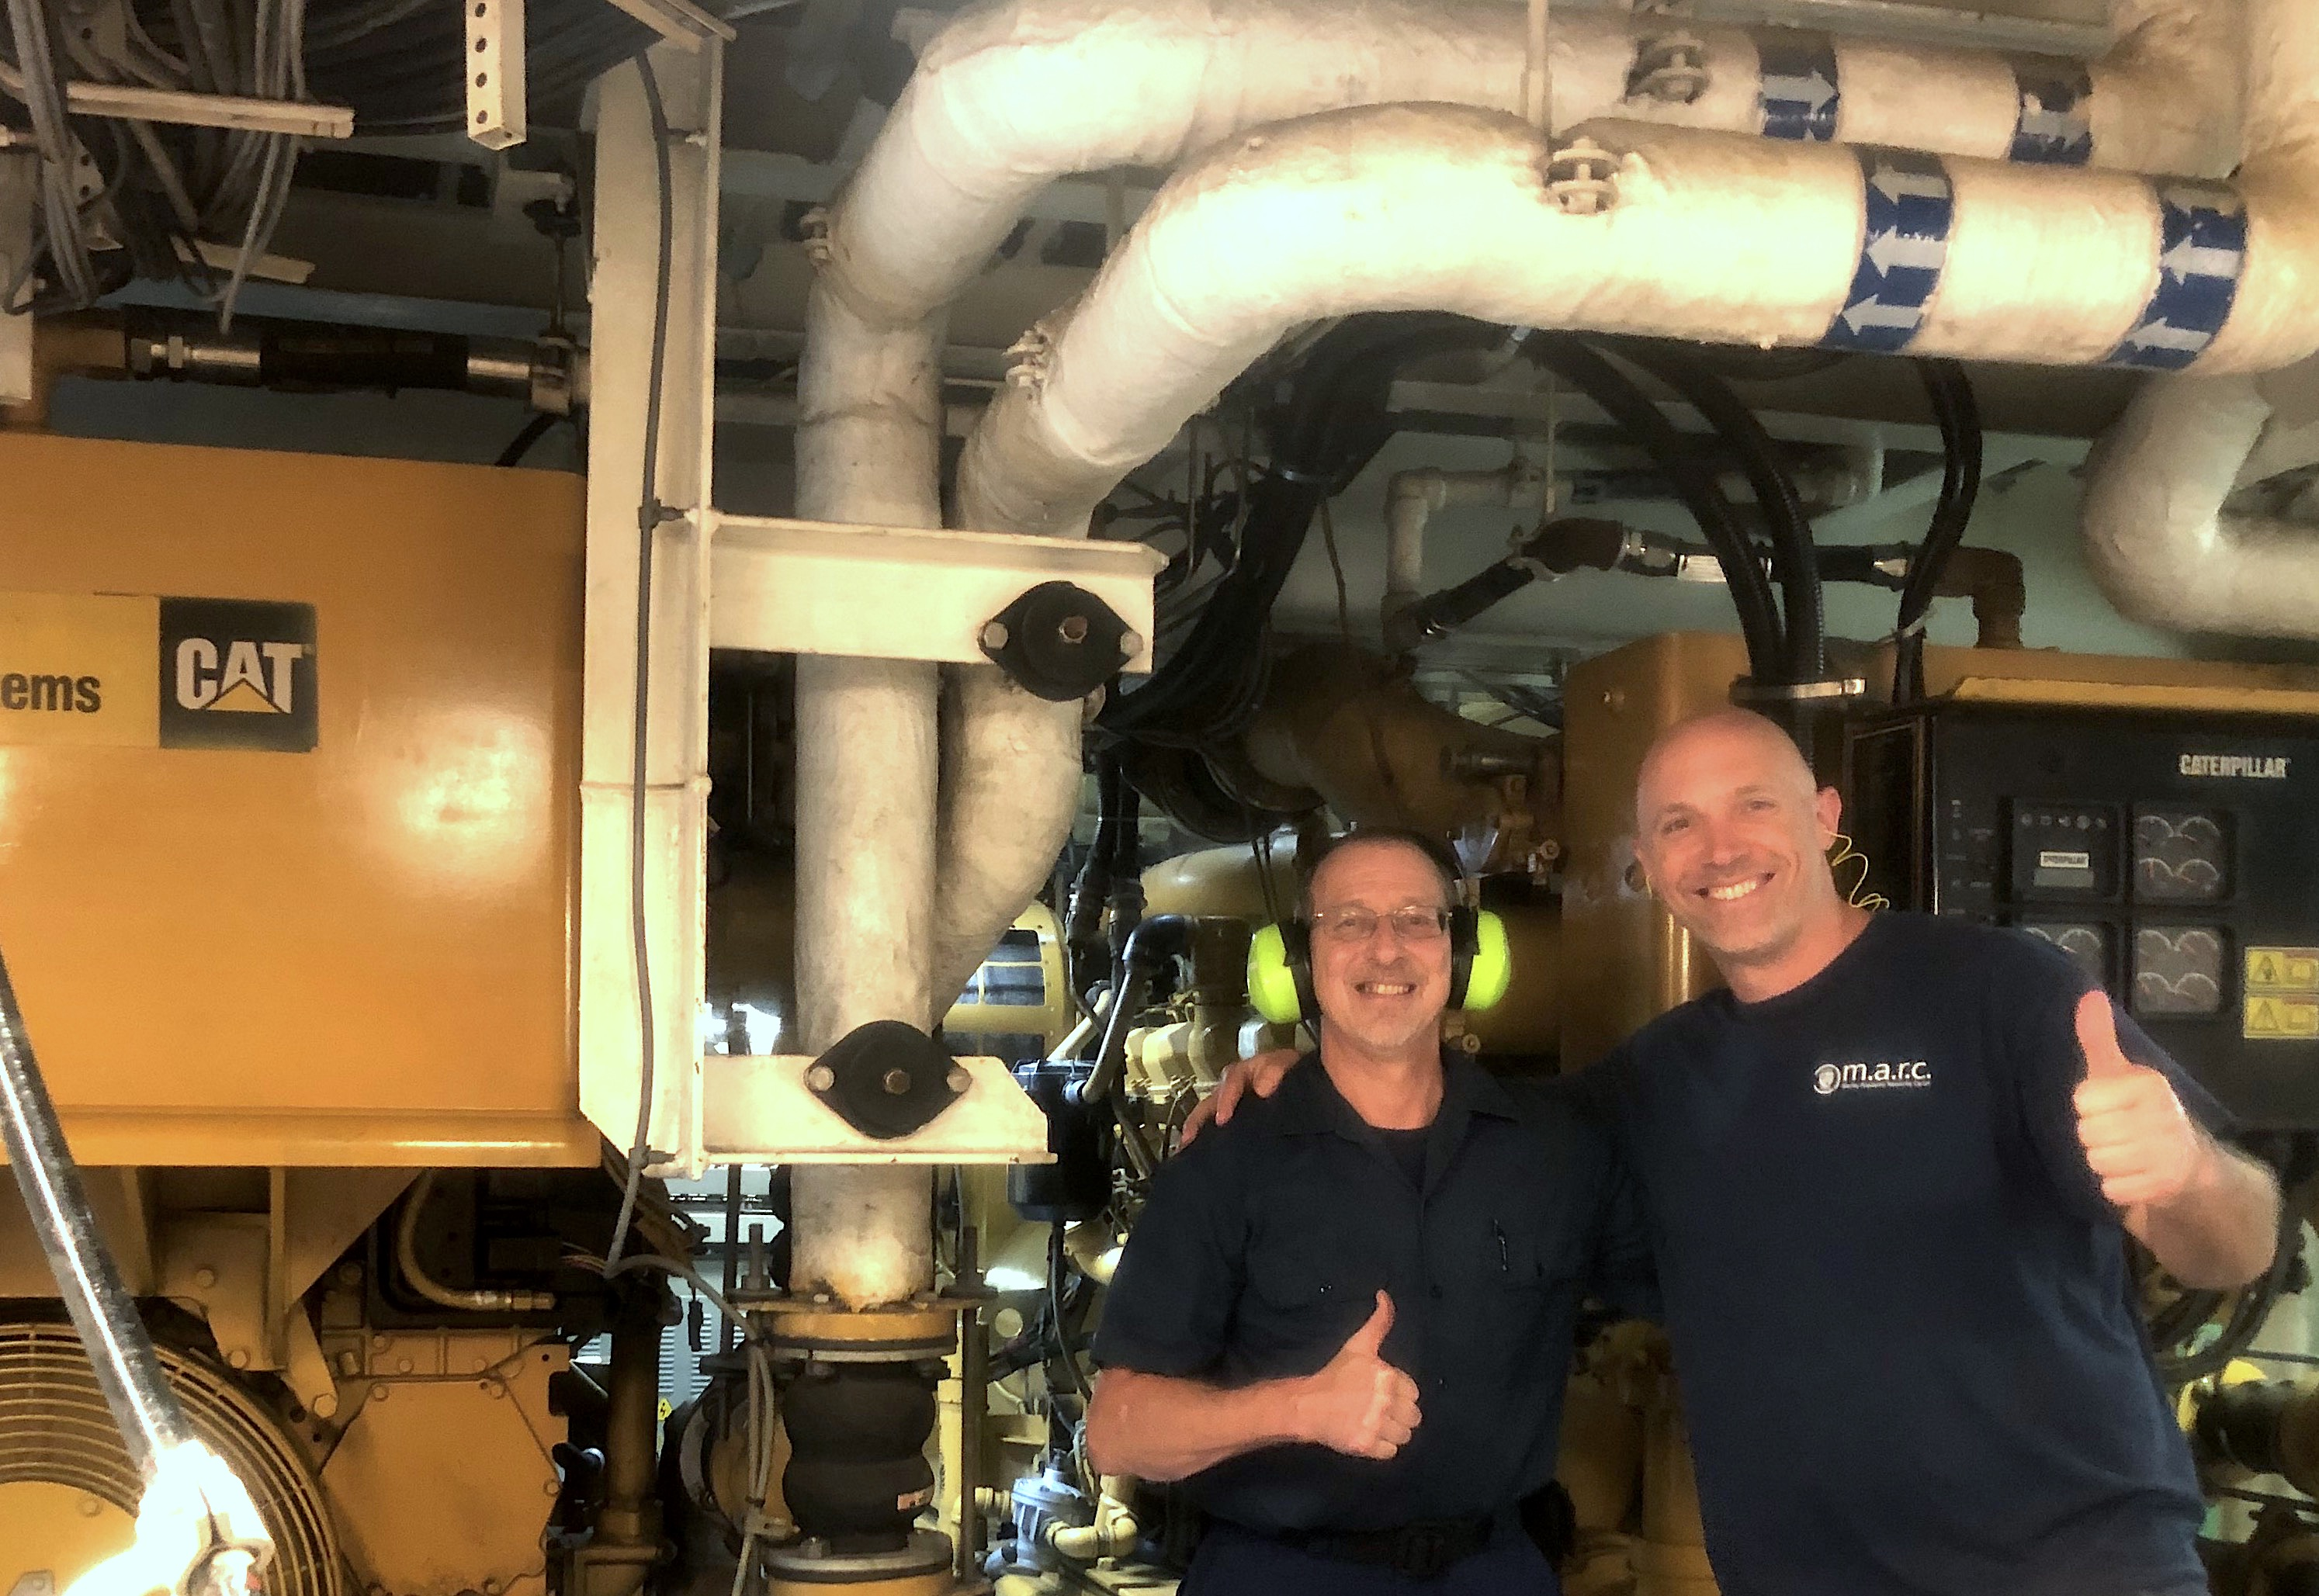 Dave and Steve and engines